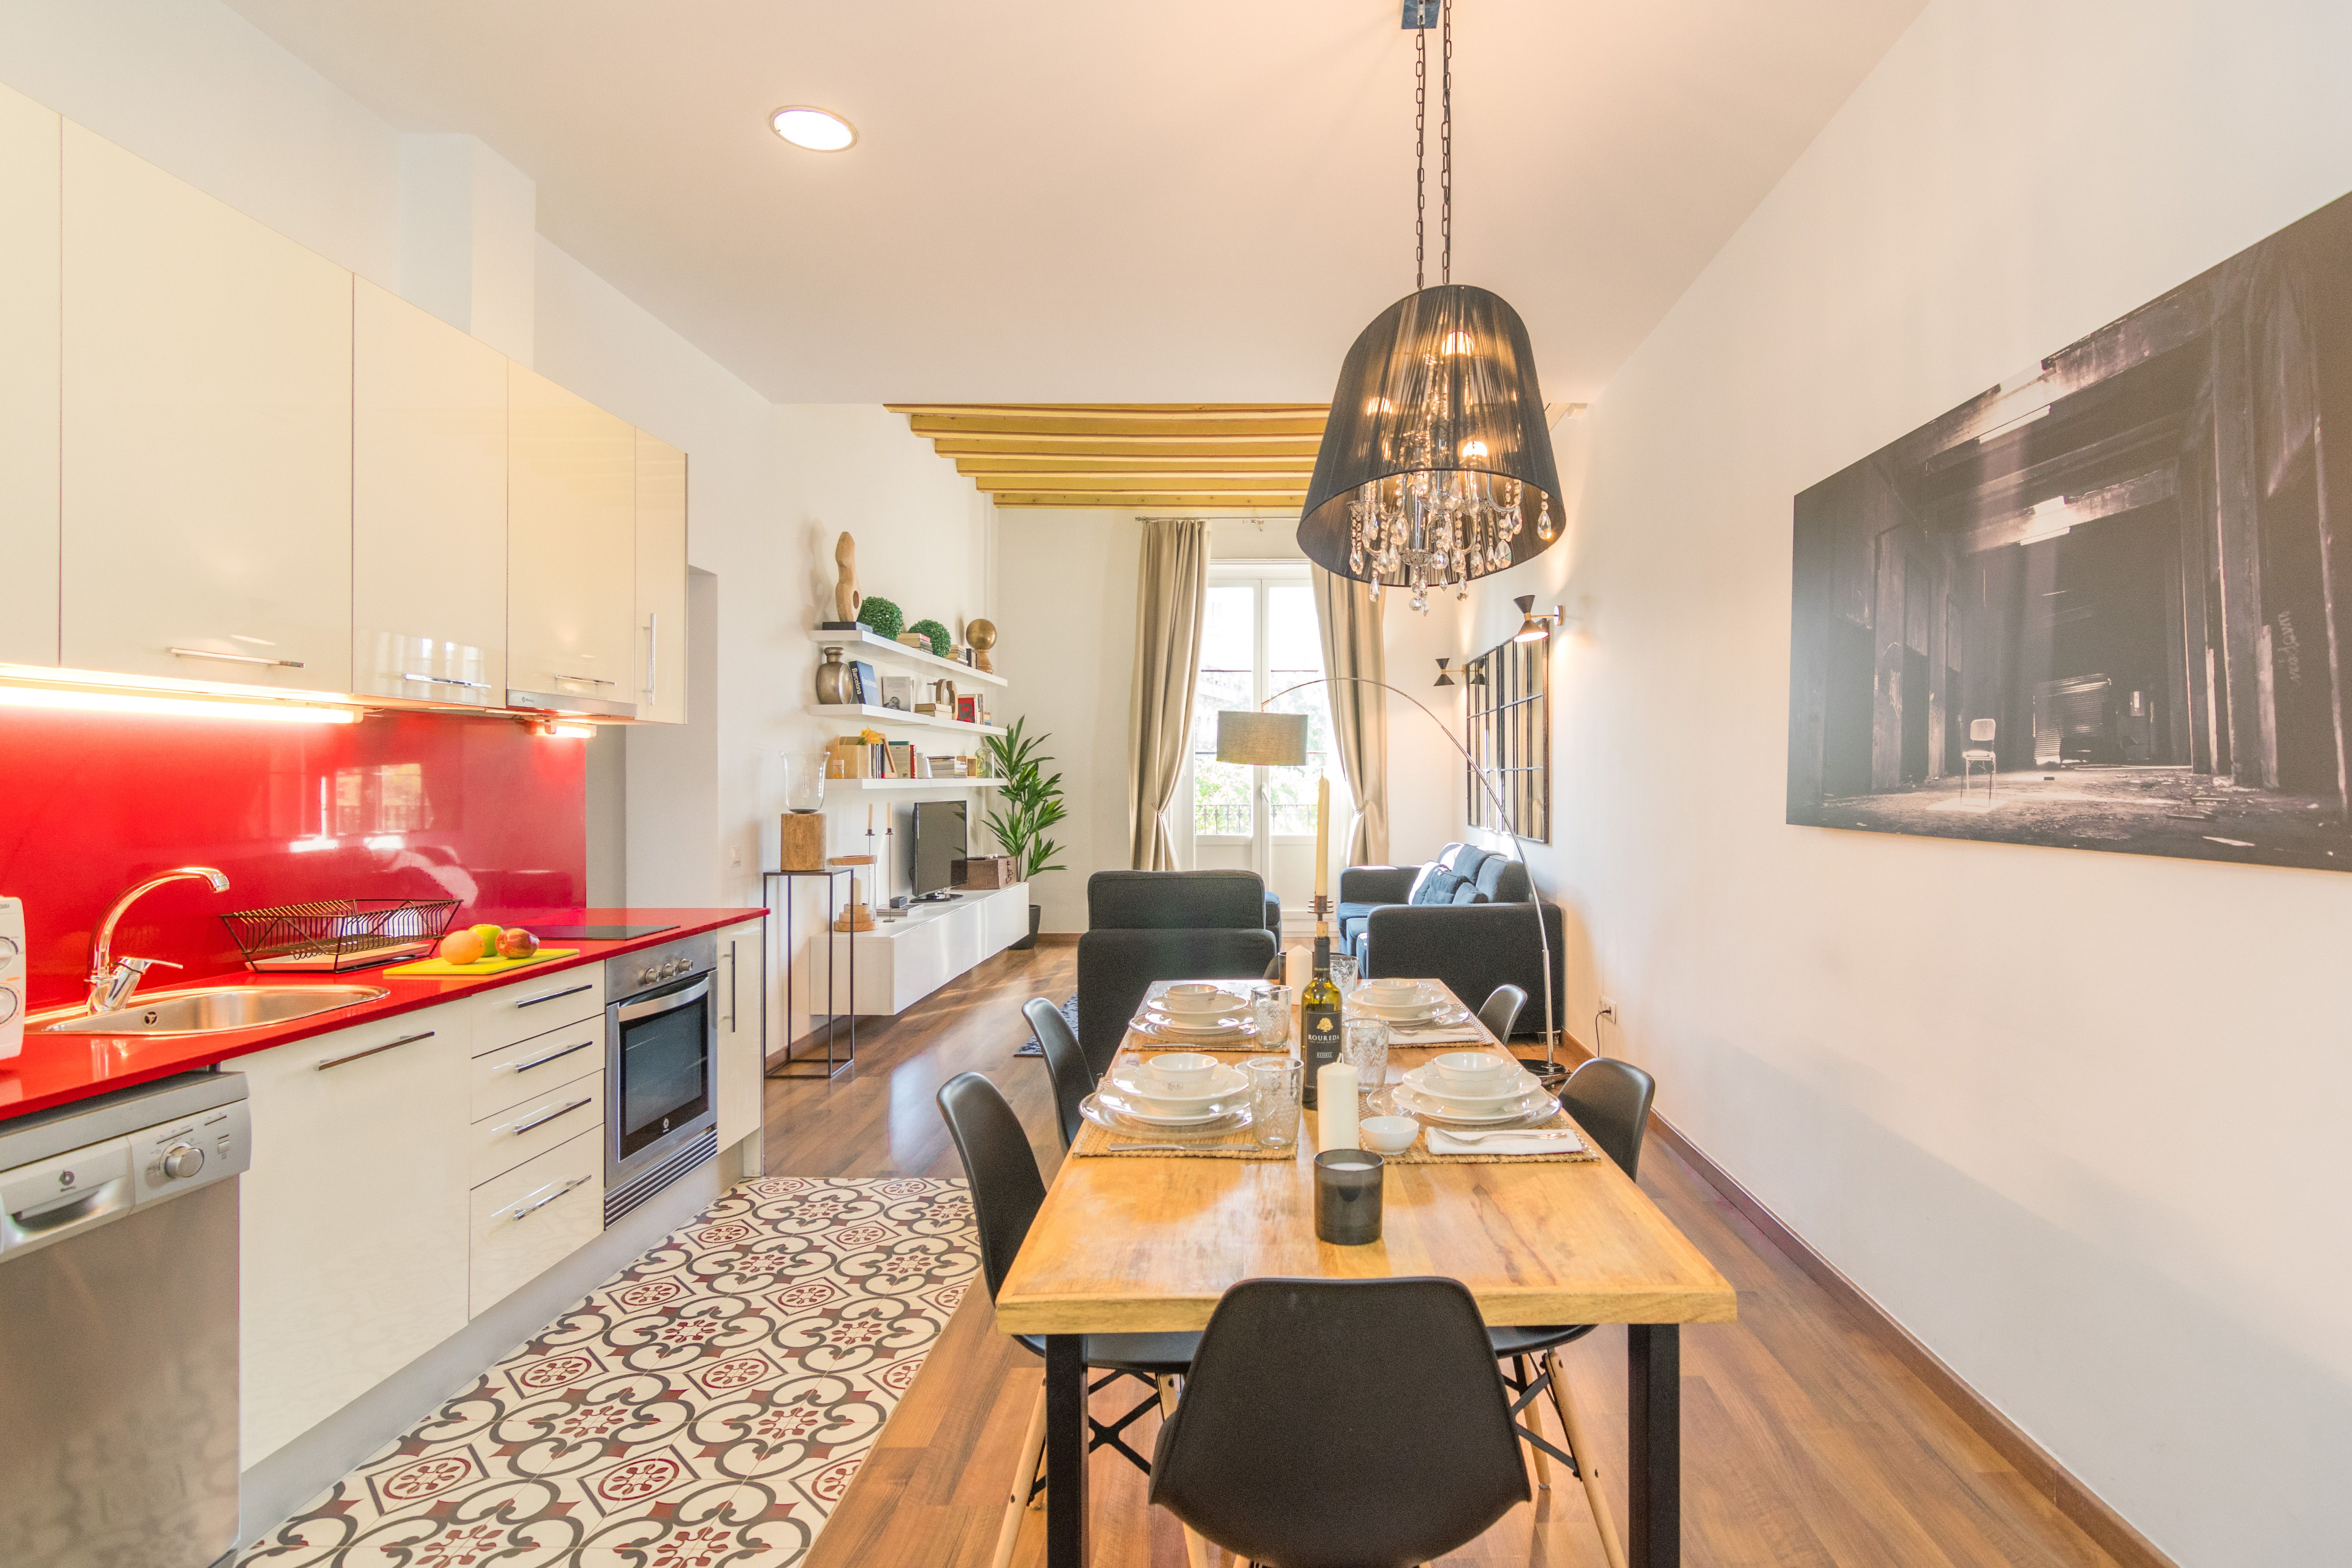 11. Cocina Comedor - Kitchen and Dining room.jpg | 1840 Apartments